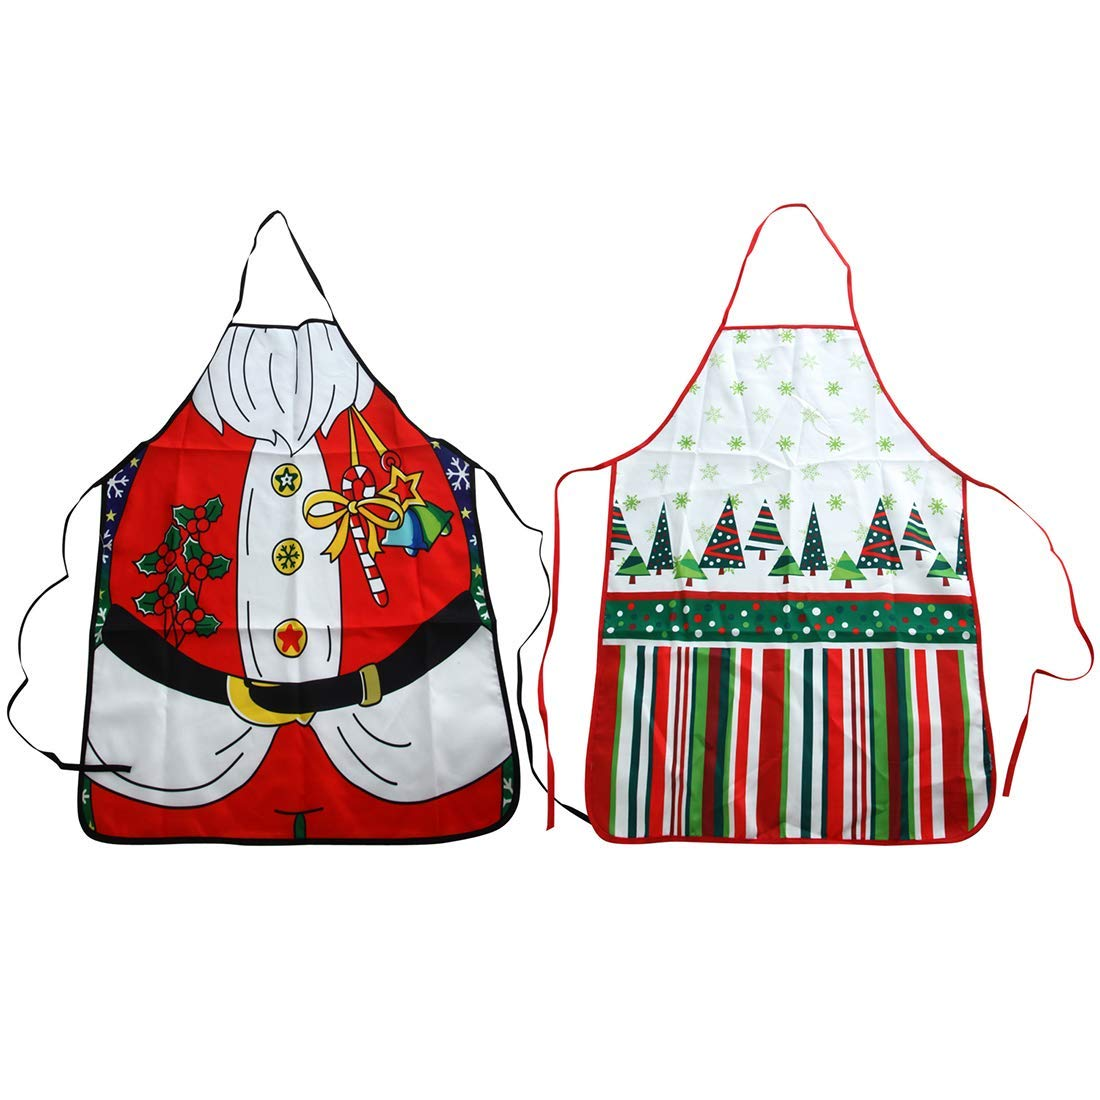 Christmas Apron Santa Claus Style Red Apron Polyester Cotton Kitchen Apron For Women Men Kids Adults Christmas Home Decorations Replacement Parts & Tools